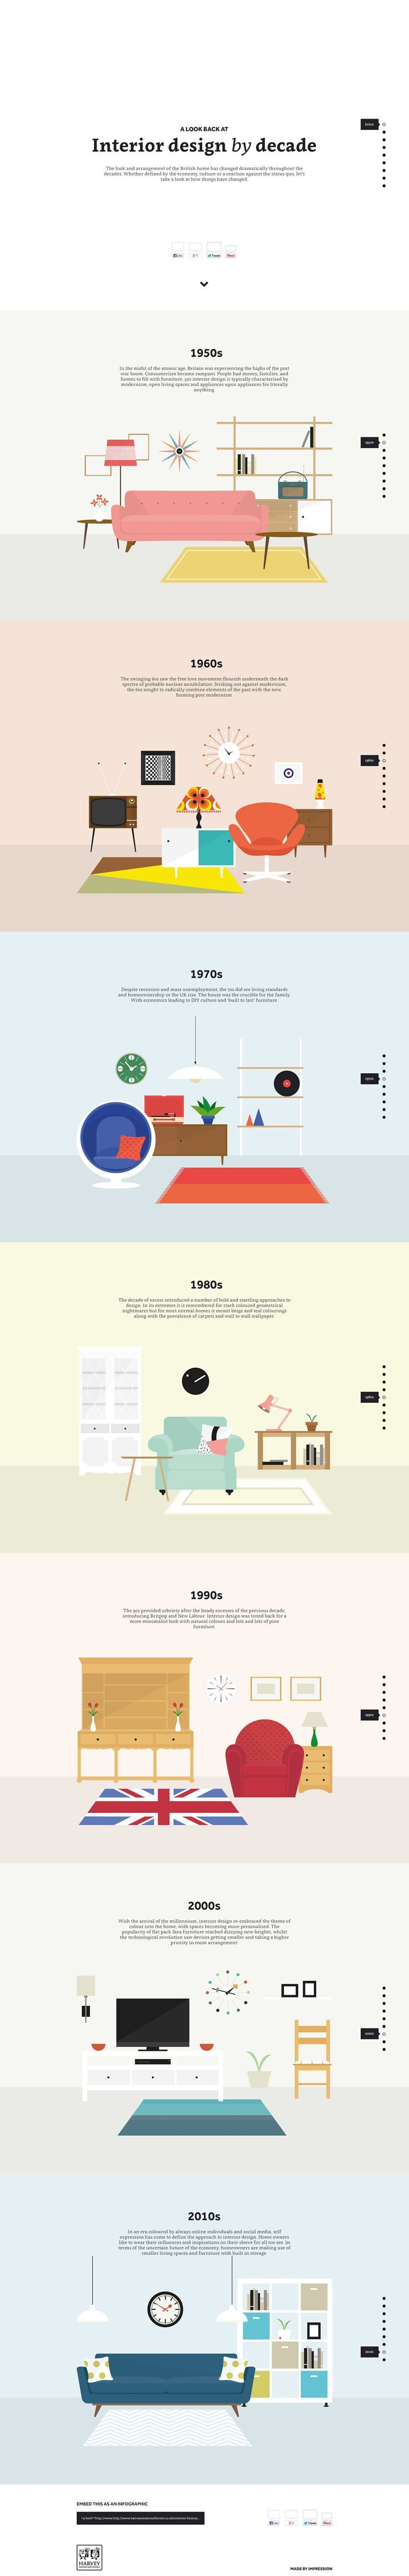 Lovely informational one pager showcasing how interior design has changed over the previous decades. The long one page website is really well done with interactive hotspots of information overlaying the beautiful illustrations of furniture. A shout out to the responsive adaption as well, the hotspots turn into paragraphed information below the illustrations. Great job.